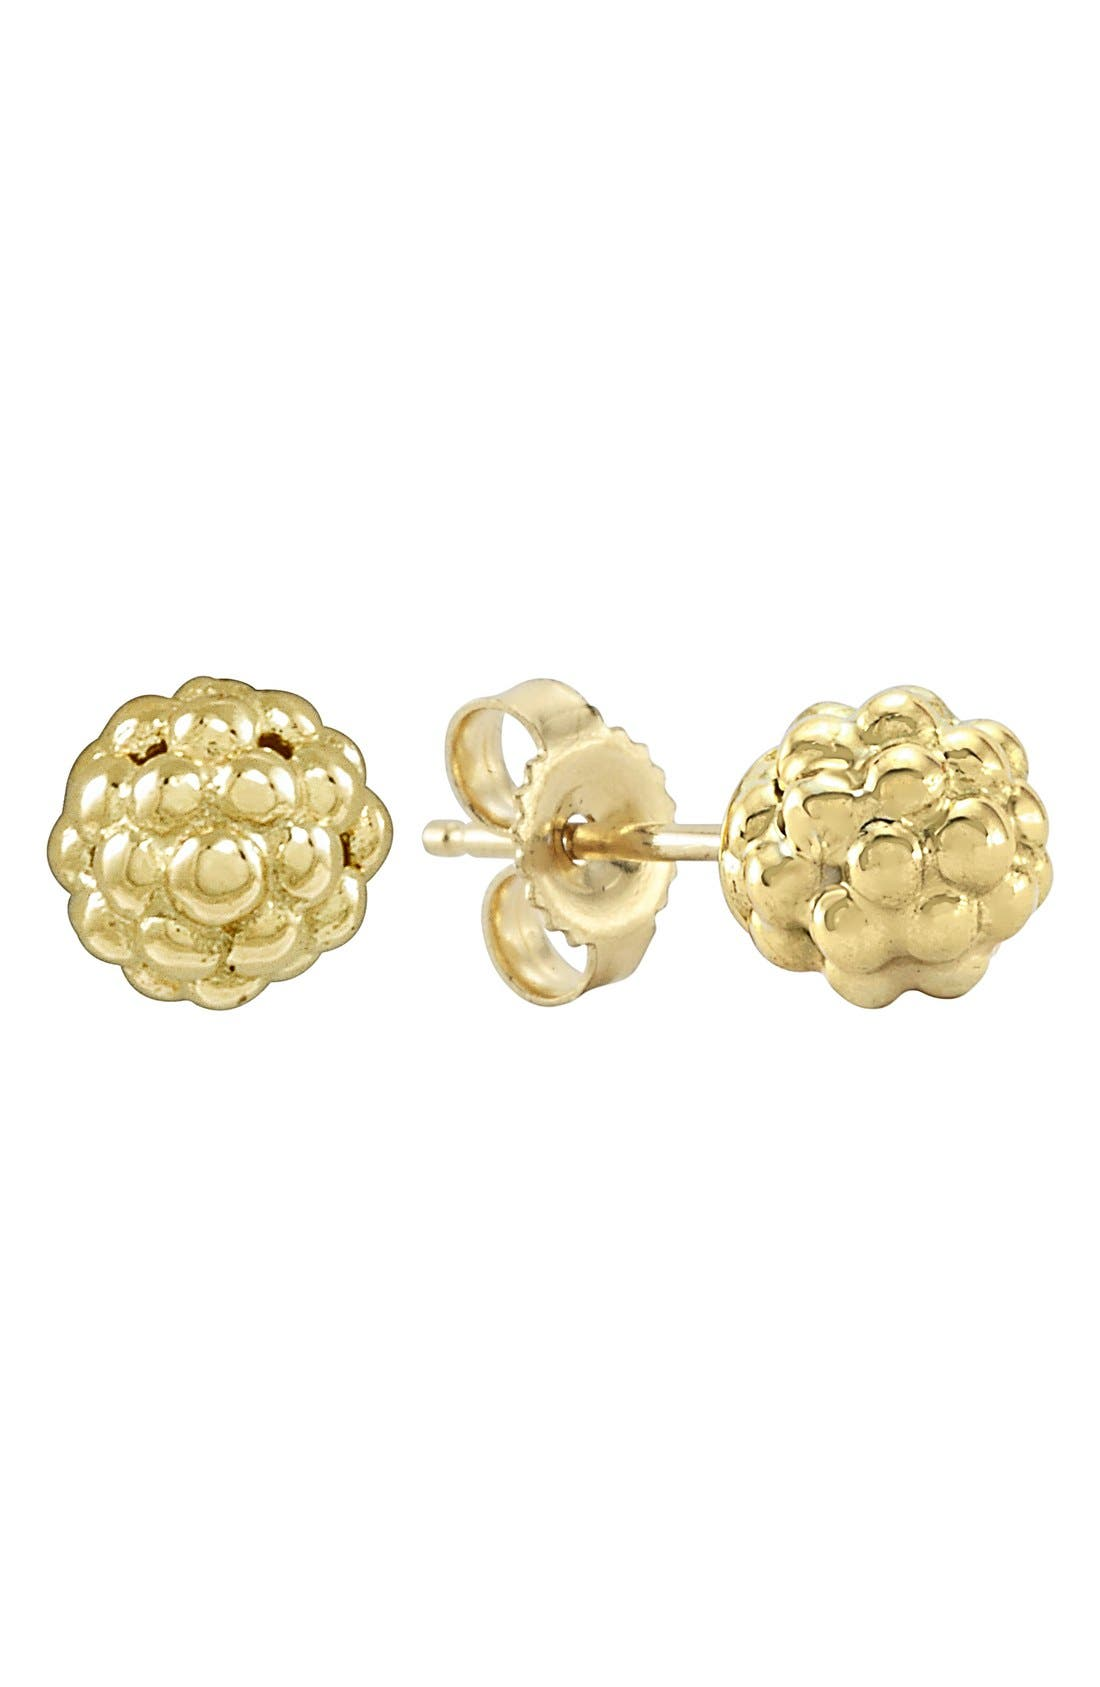 'Caviar Icon' Stud Earrings,                             Main thumbnail 1, color,                             GOLD